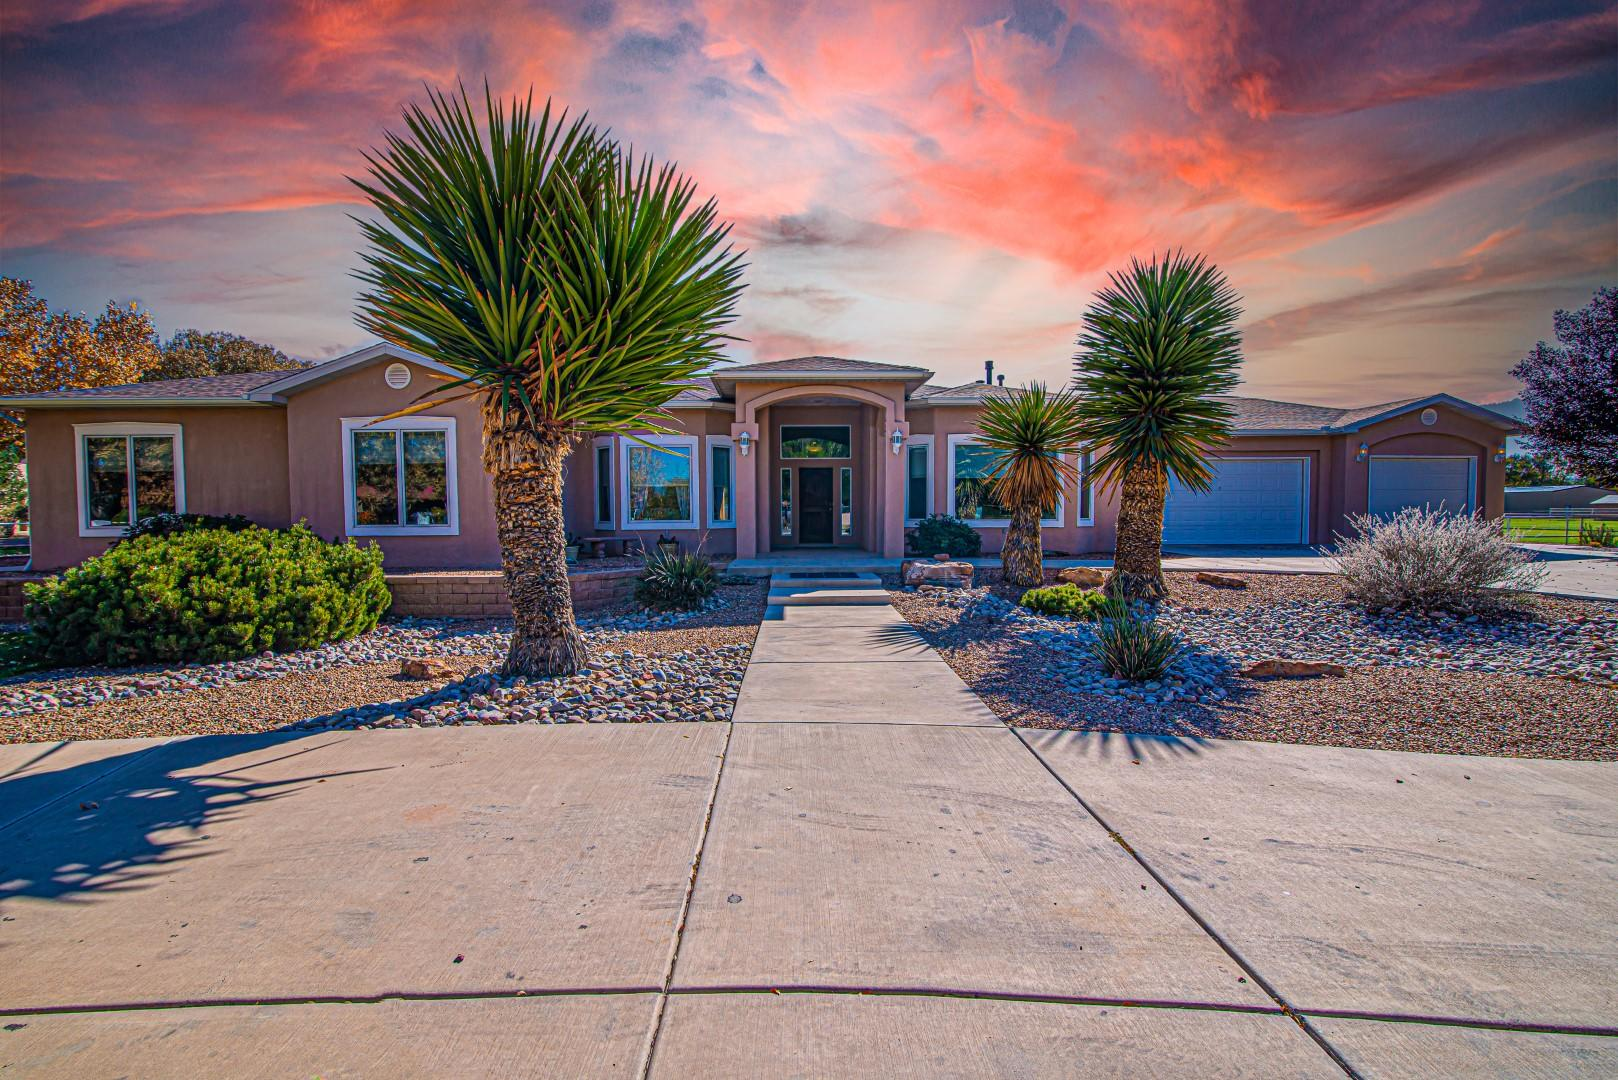 Beautiful custom home on 2 irrigated acres in Bosque Farms!  This home offers 4098 sq ft, 4 bedrooms, 2 full +3/4 +1/2 baths (total 4)  plus a game room with a wet bar, and a workout room.  Central vac system, radiant heat, 2 hot water heaters, 2 refrigerated air units.  Huge family room with cathedral ceilings.  Covered patio is 964 sq ft across the entire back of the home and opens onto beautiful yard with in-ground heated swimming pool.  Yard is beautifully landscaped and on sprinklers with a gazebo w/half bath for relaxing by the pool.  3-car attached garage plus a 3-car RV garage/workshop & attached carport.  City water, City sewer & irrigation well.  Bring your animals and your toys and come to the peace & quiet of Bosque Farms.  Easy access to I-25 and minutes to Albuquerque